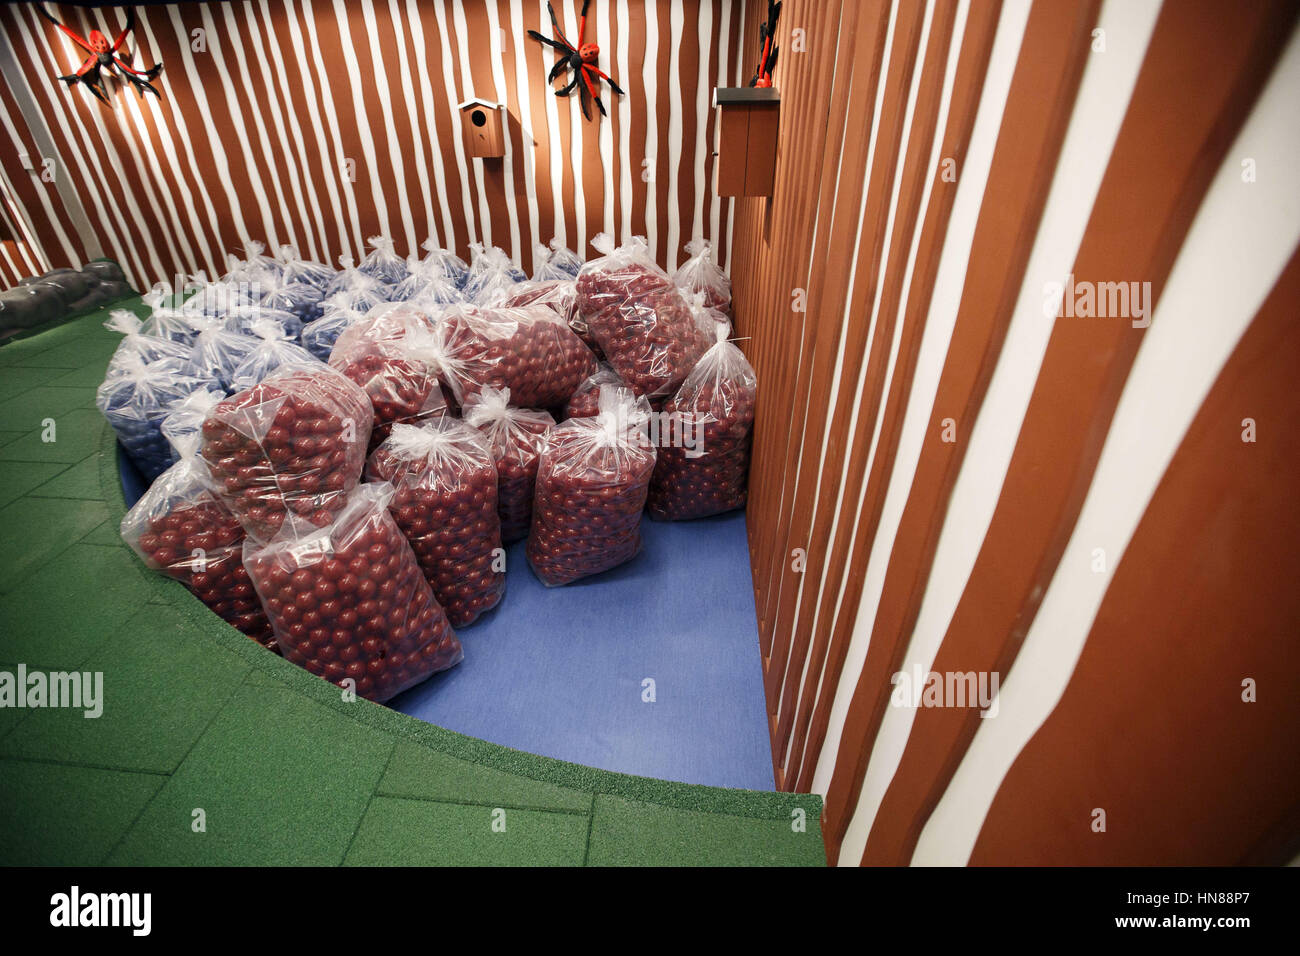 Balls For The Childrenu0027 Play Area Remained Wrapped In Plastic Bags During A  Preview Of The New IKEA Burbank Home Furnishings Store On Wednesday,  February 1, ...